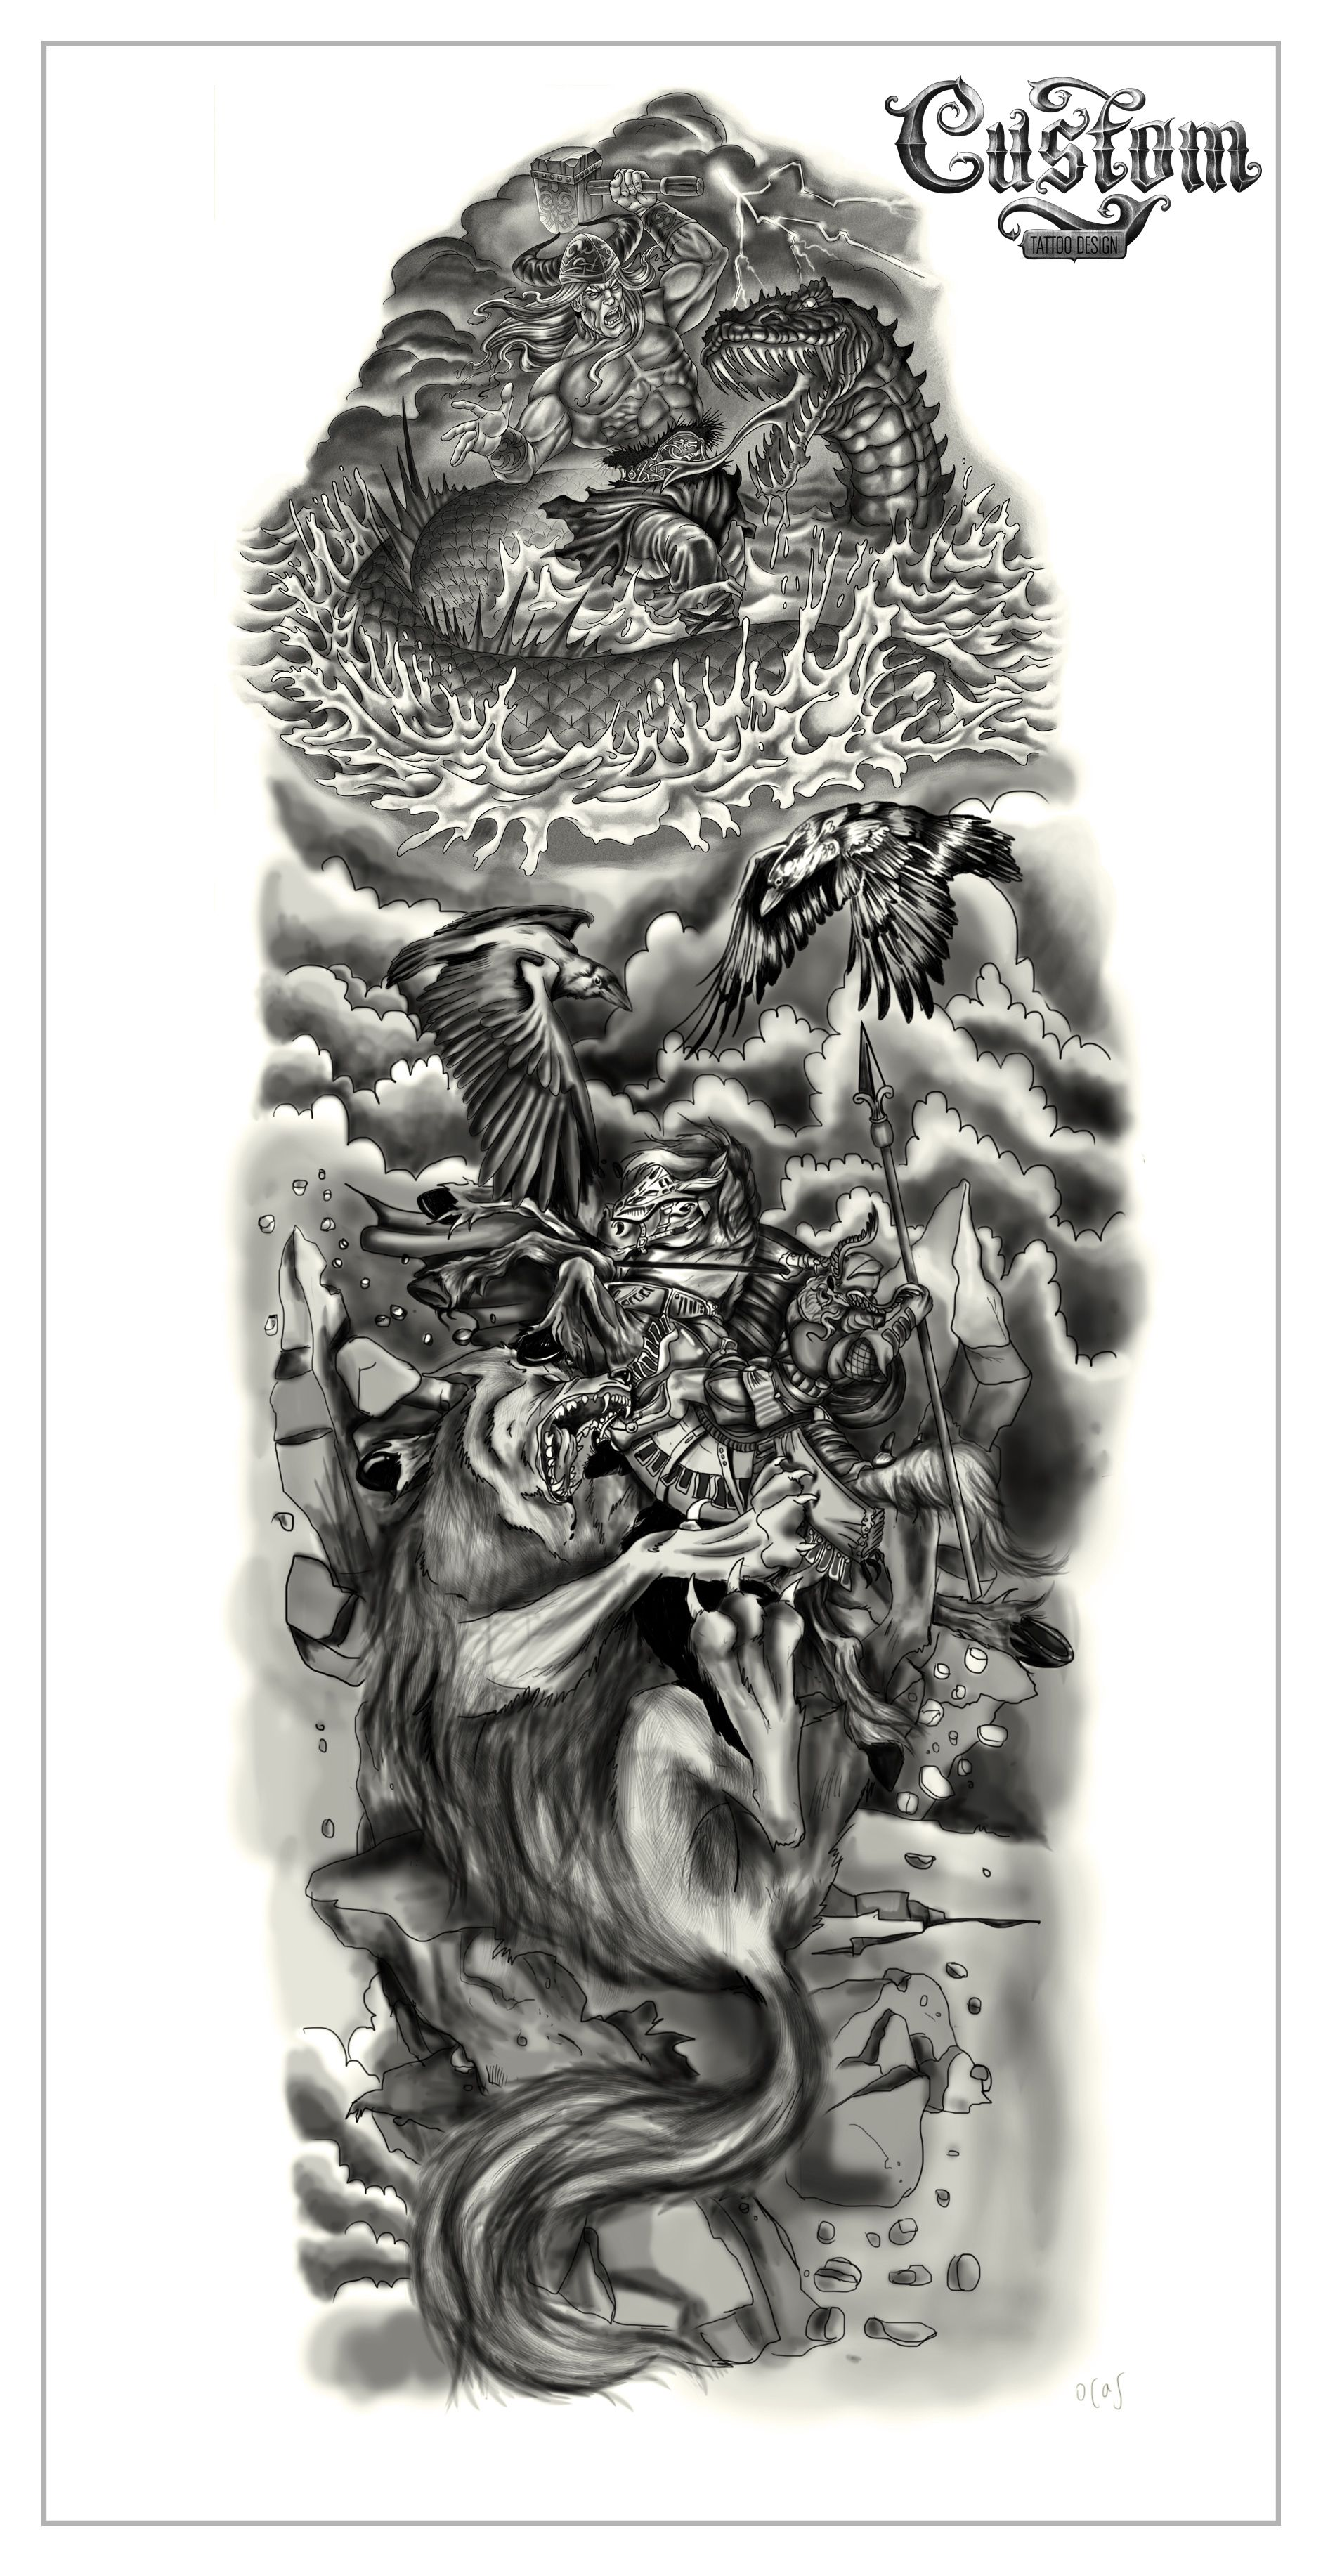 Tattoo Sleeve Drawings Designs: Tattoo Designs Gallery Of Artwork And Videos